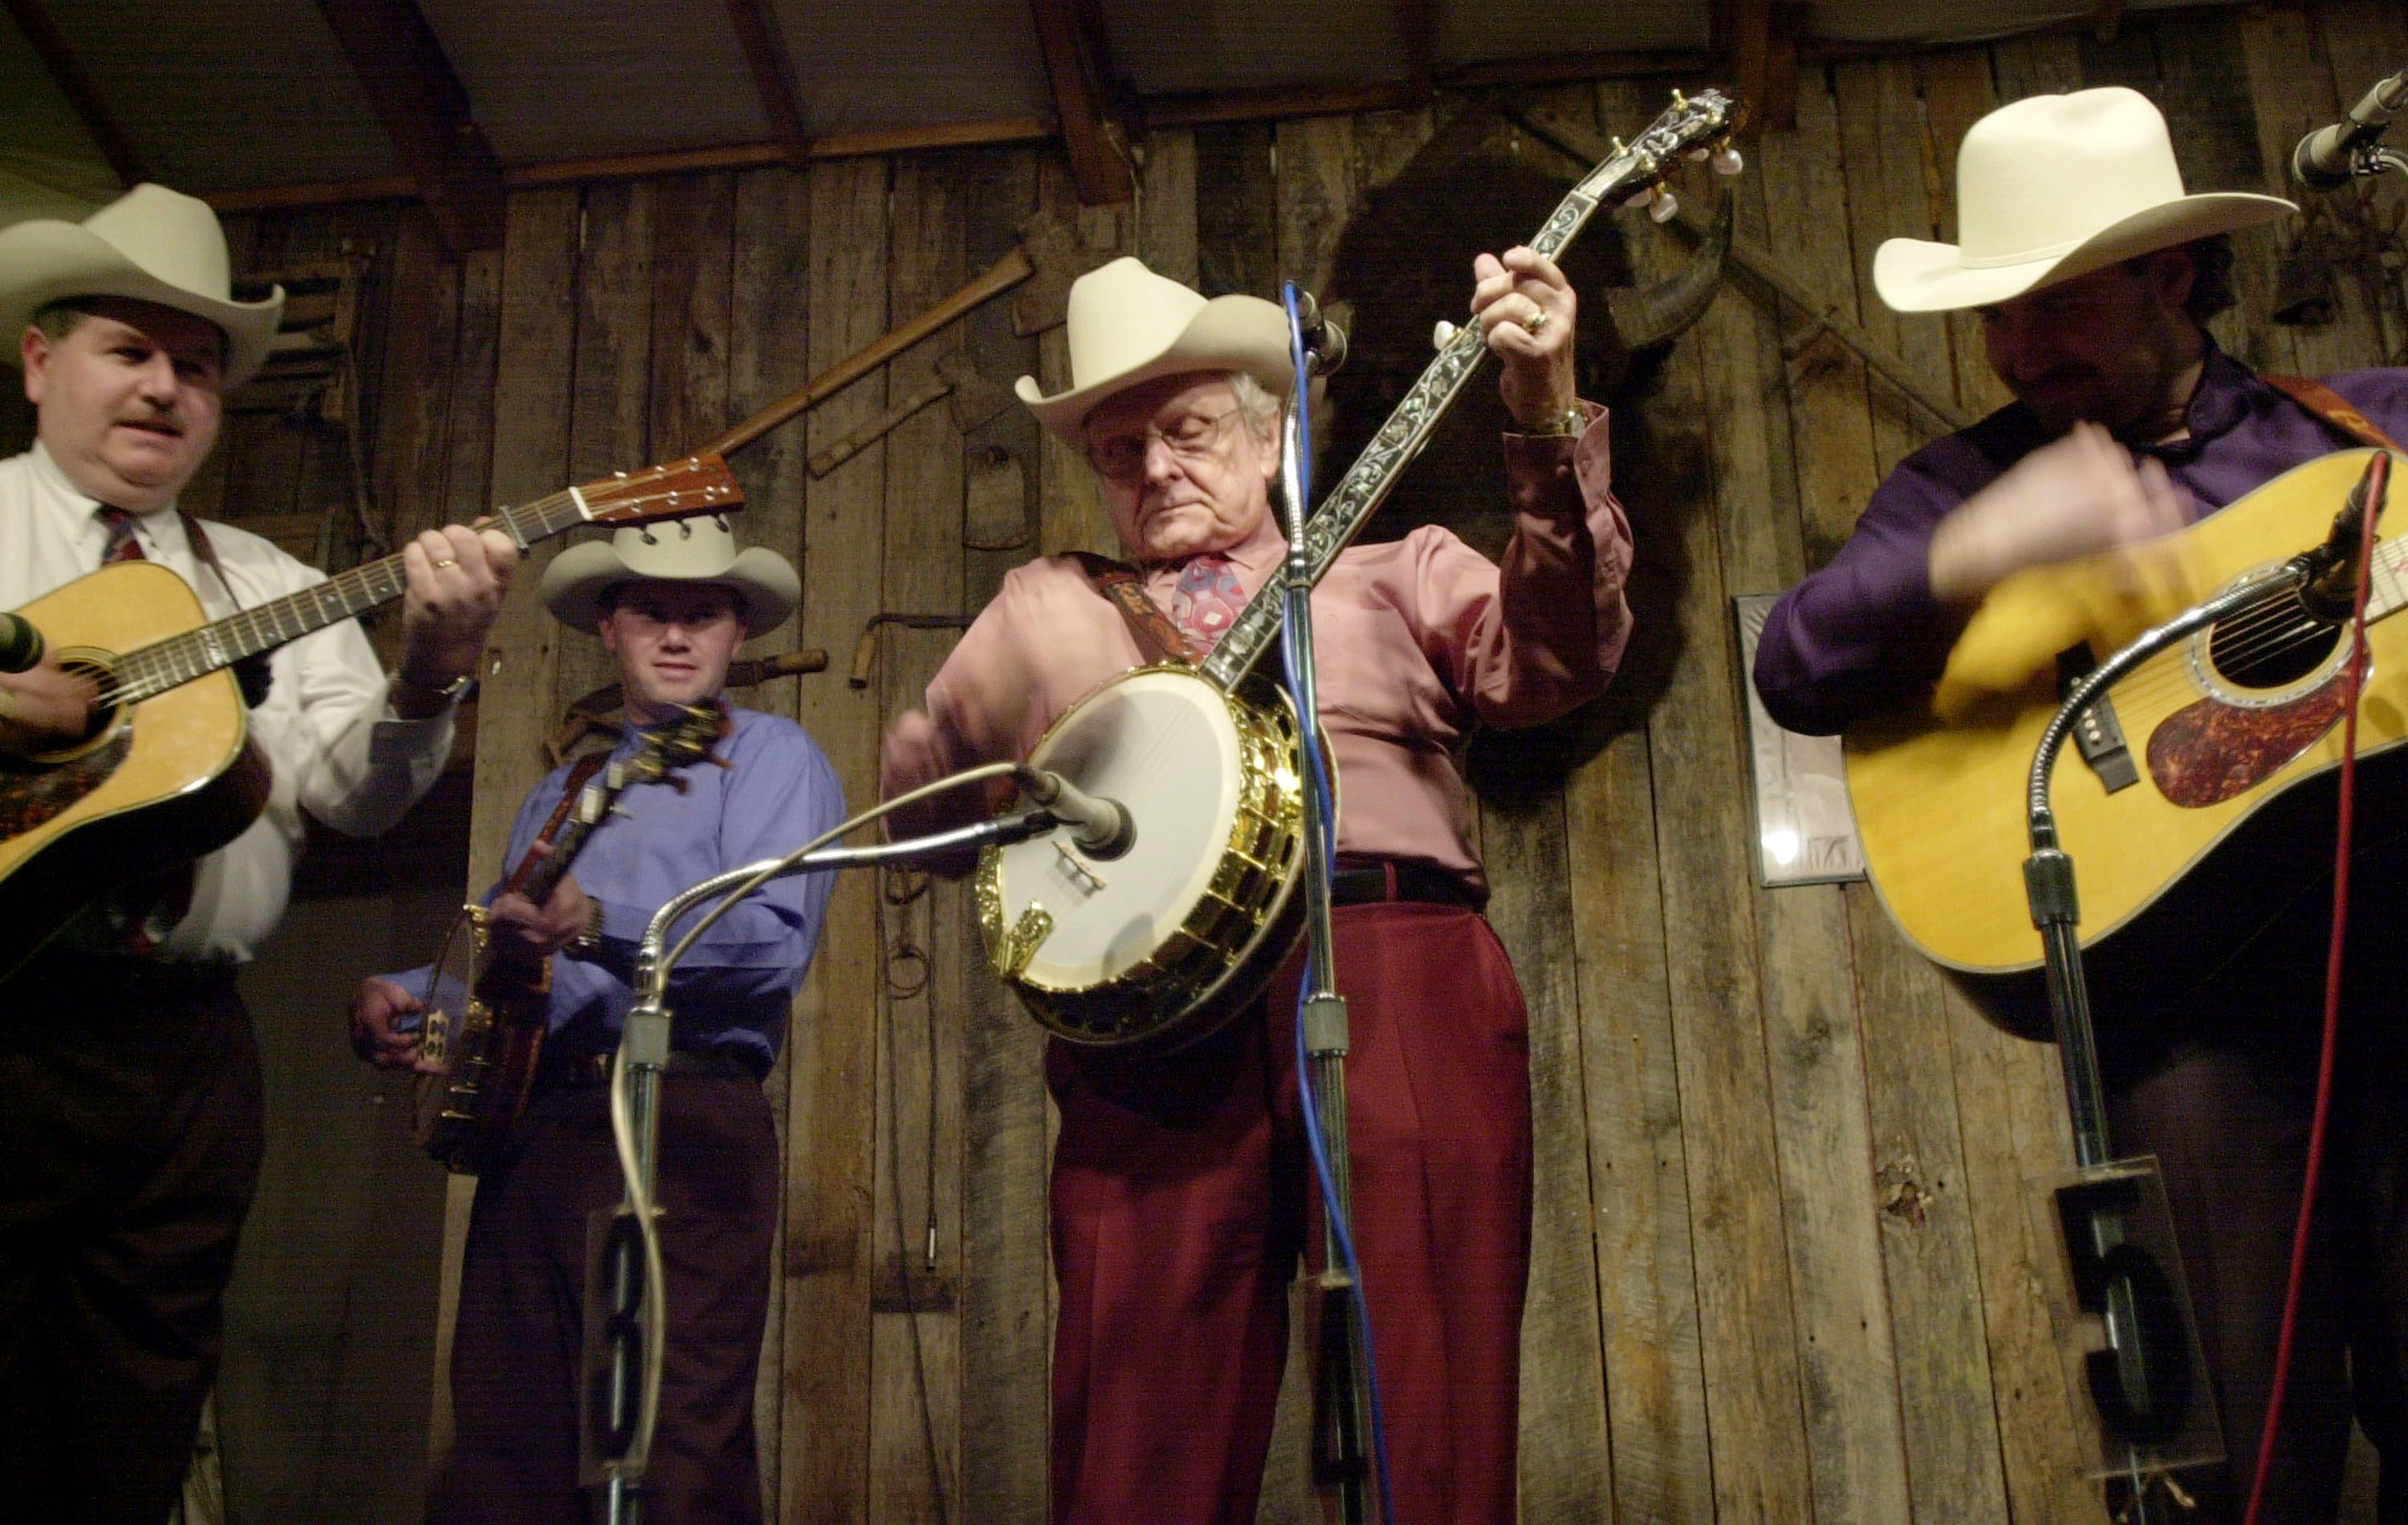 Ralph Stanley and the Clinch Mountain Boys perform on Jan. 5, 2002 at the Meadowgreen Park Bluegrass Music Hall in Clay City, Kentucky. (credit: Getty Images)